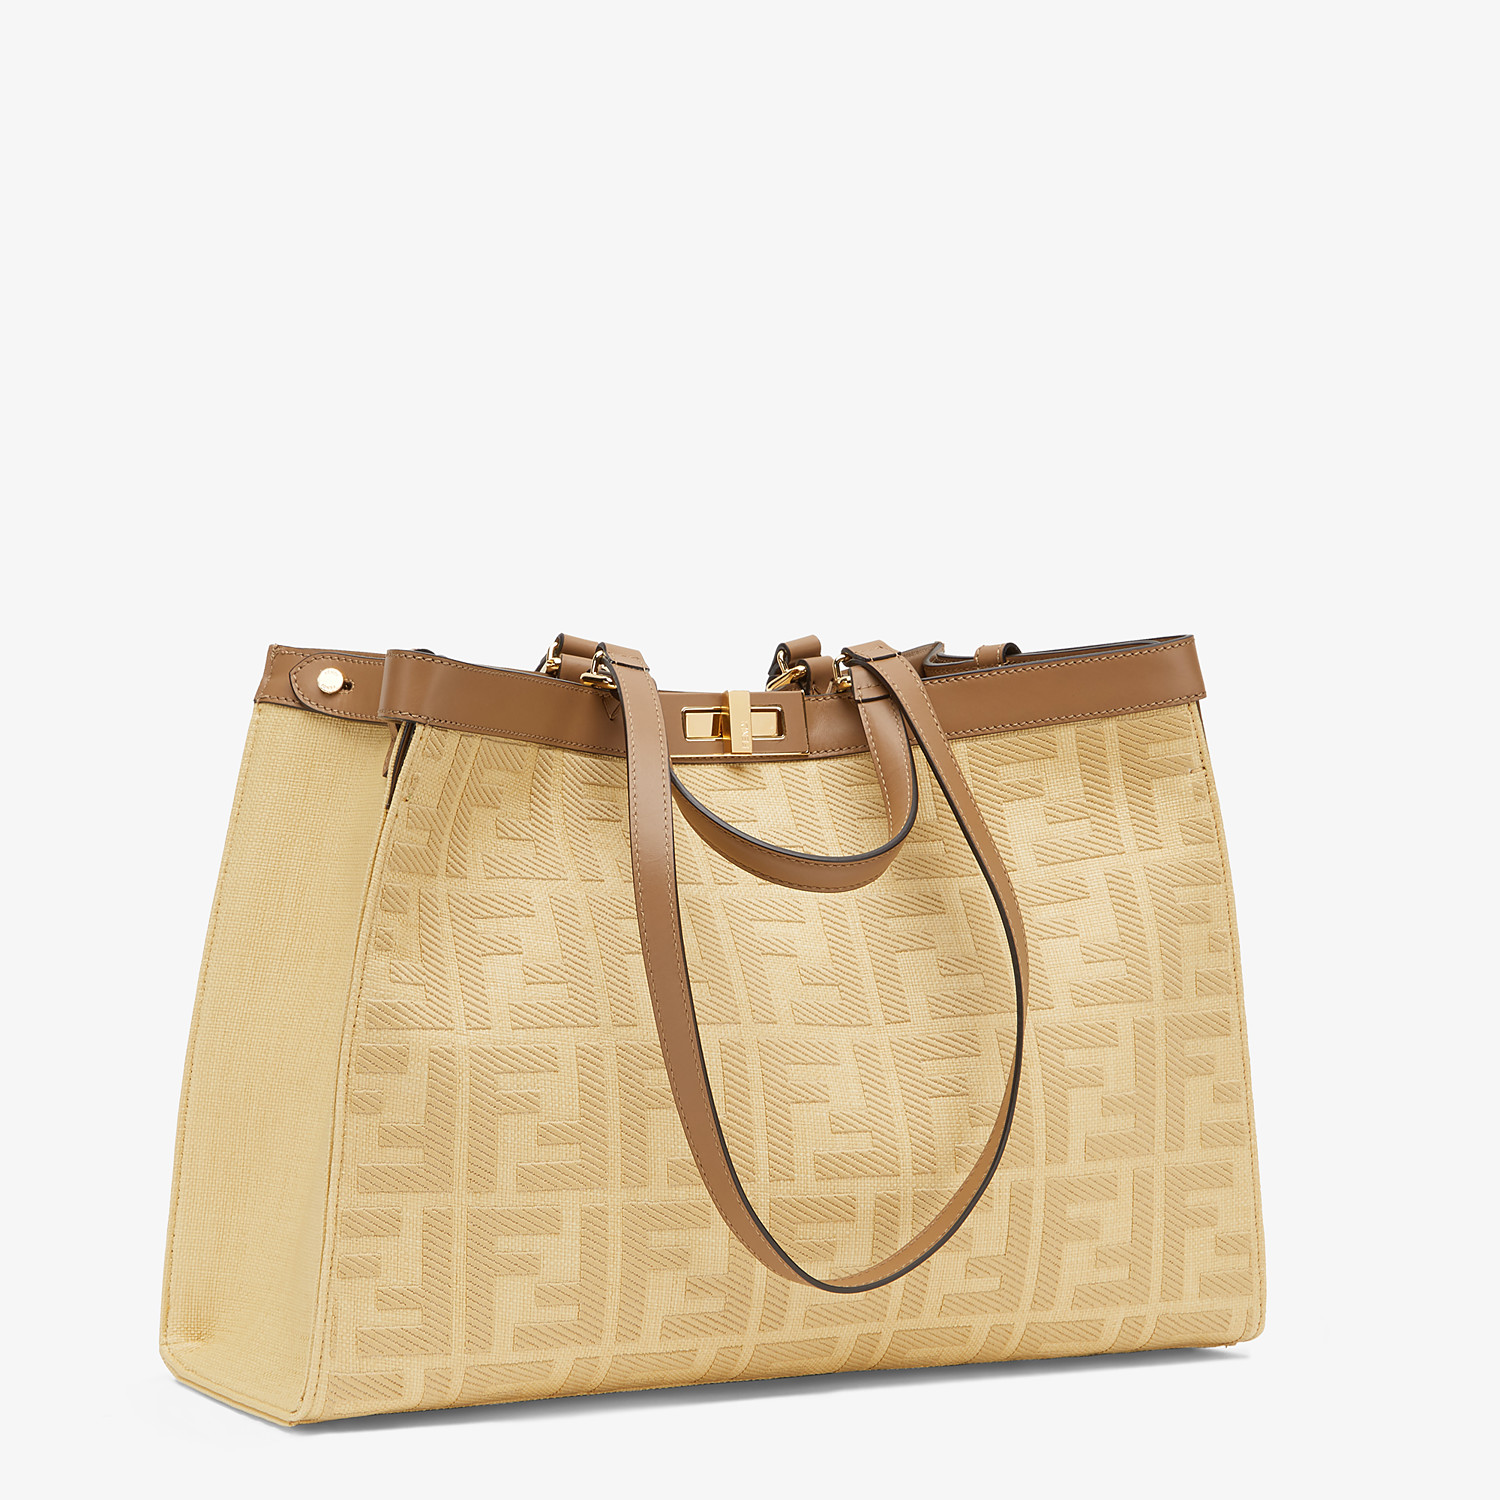 FENDI PEEKABOO X-TOTE - Beige canvas bag - view 3 detail